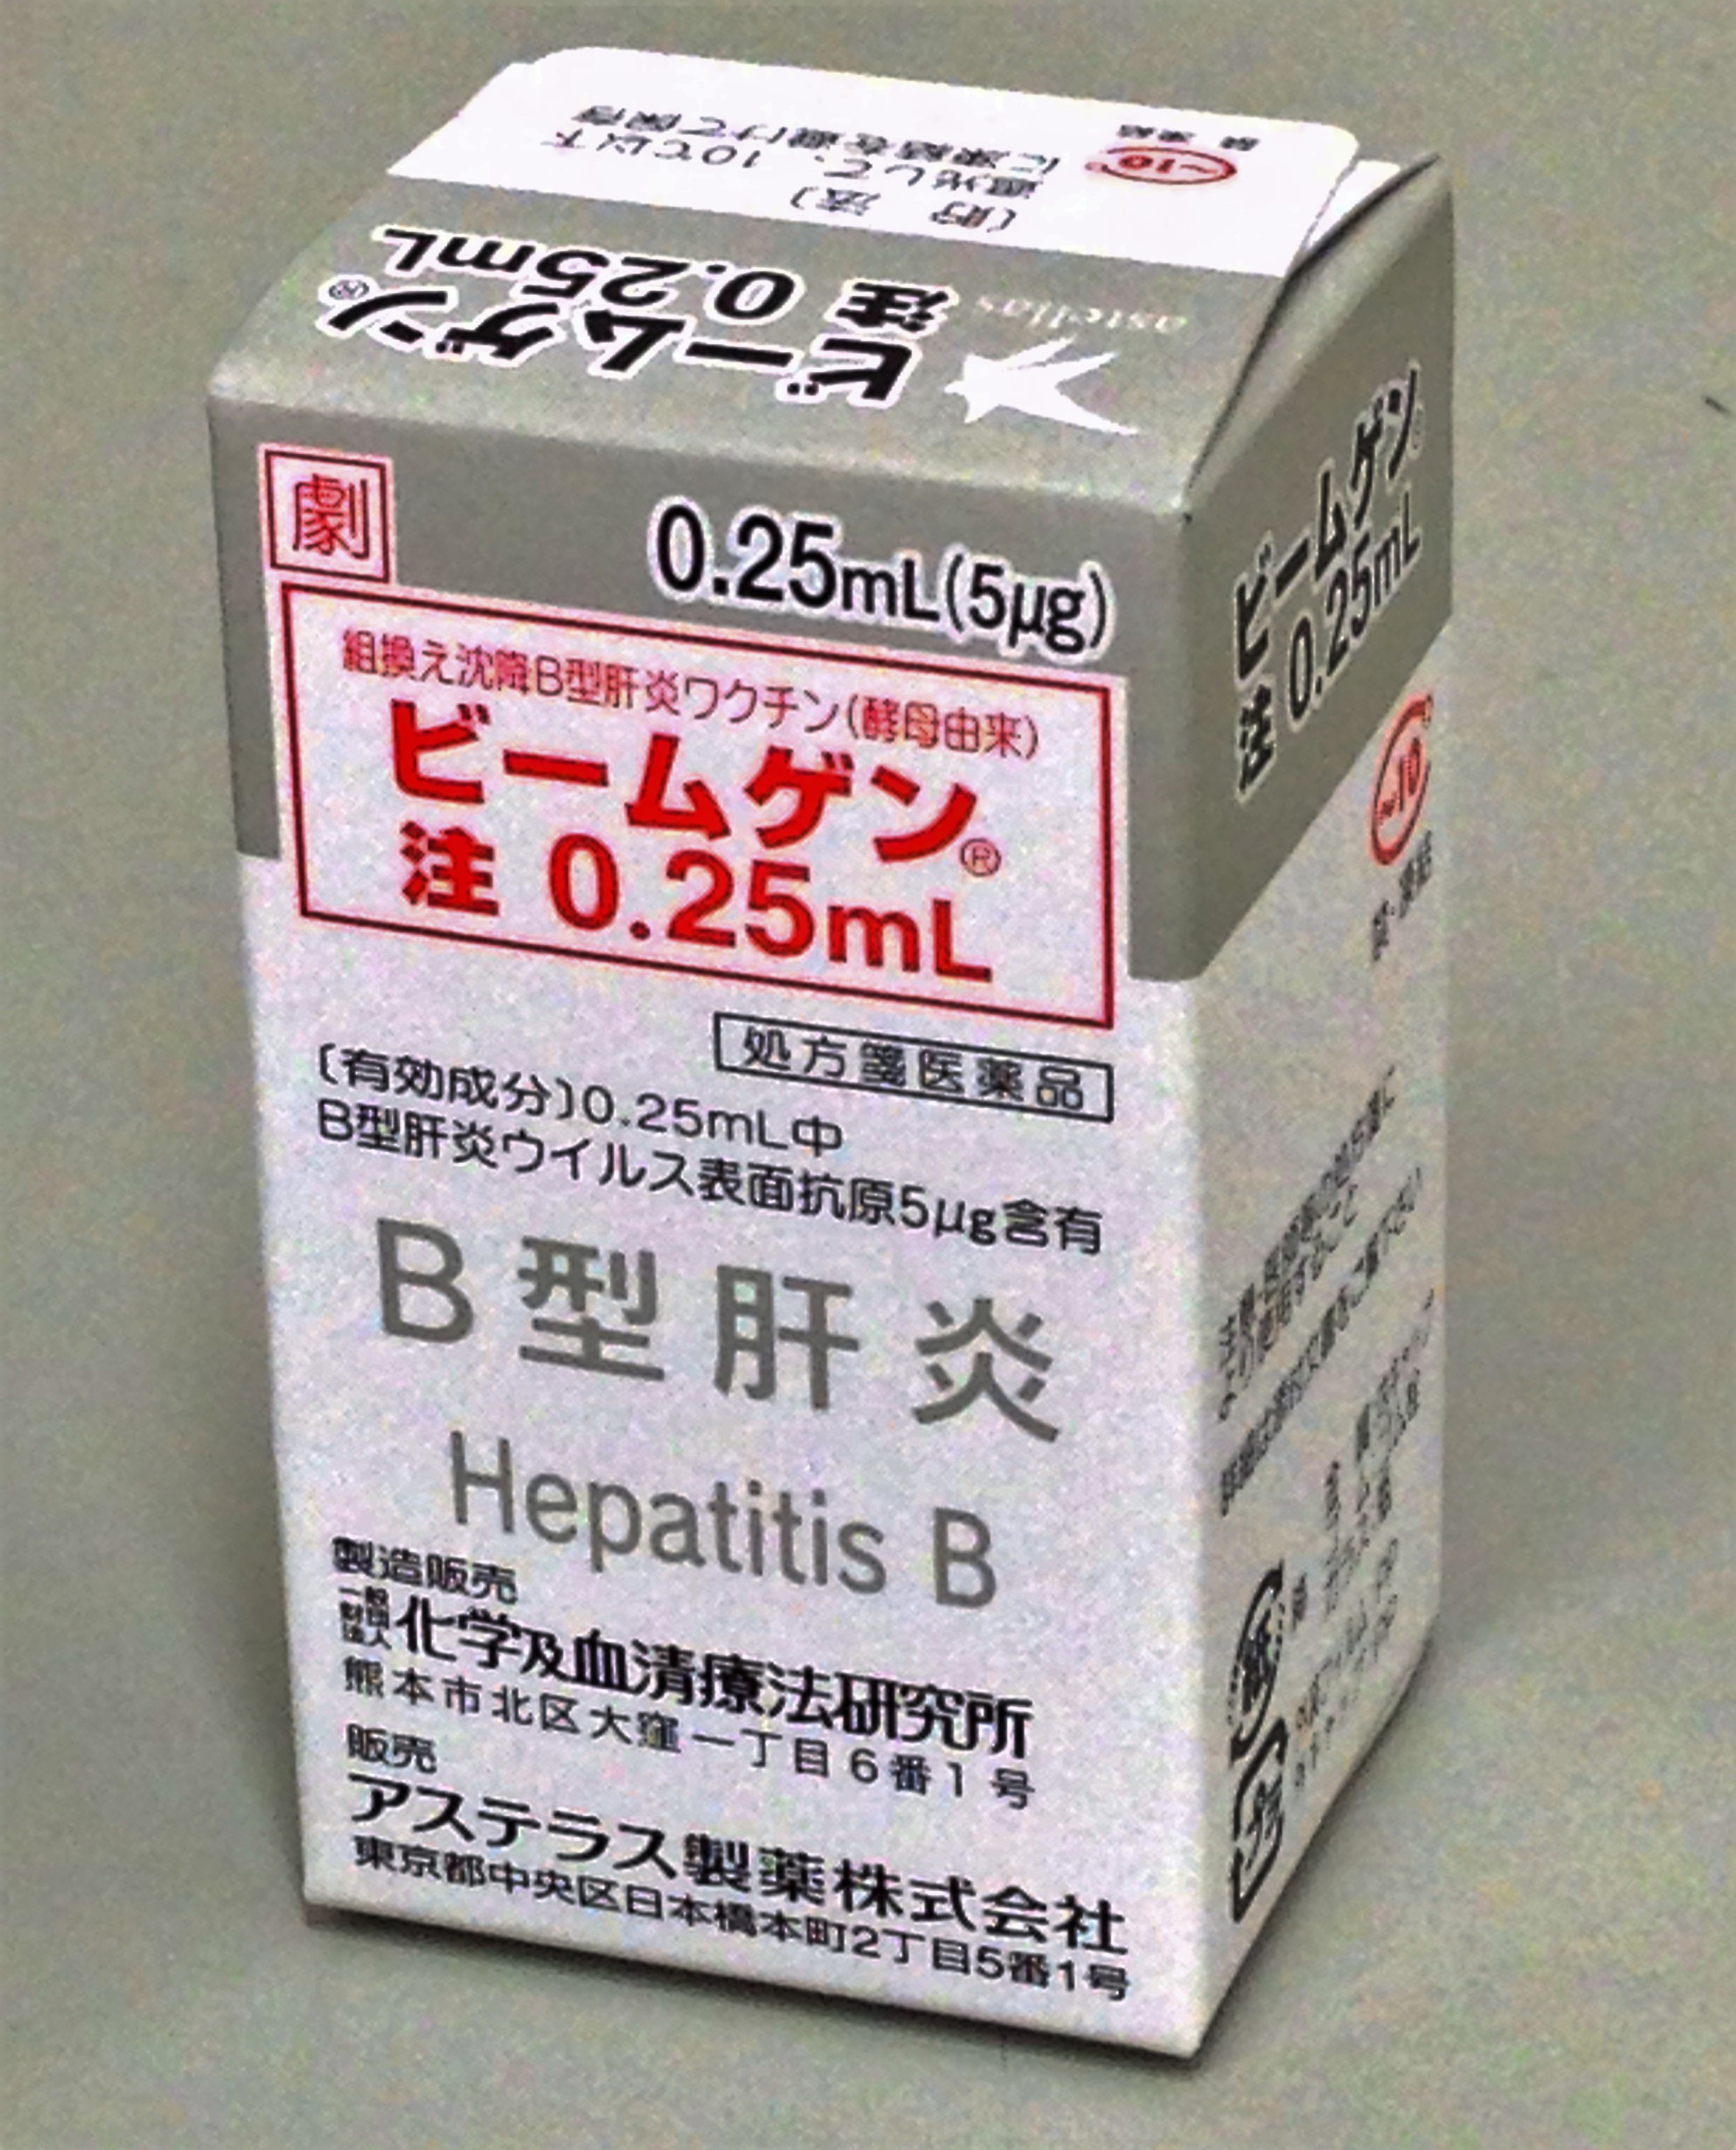 Hepatitis B vaccine - Wikipedia